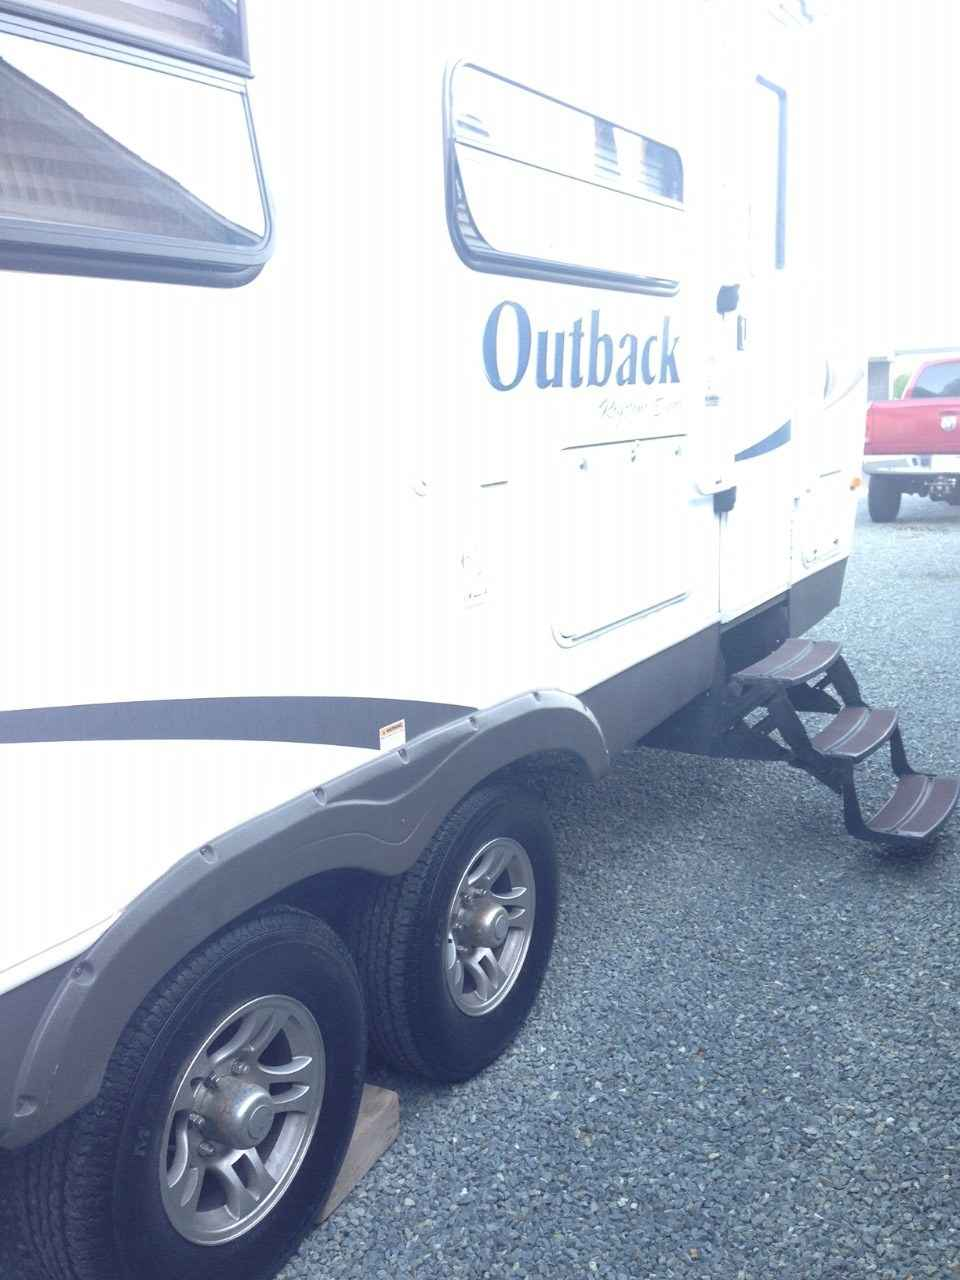 2011 Used Keystone OUTBACK 210RS Travel Trailer in ...